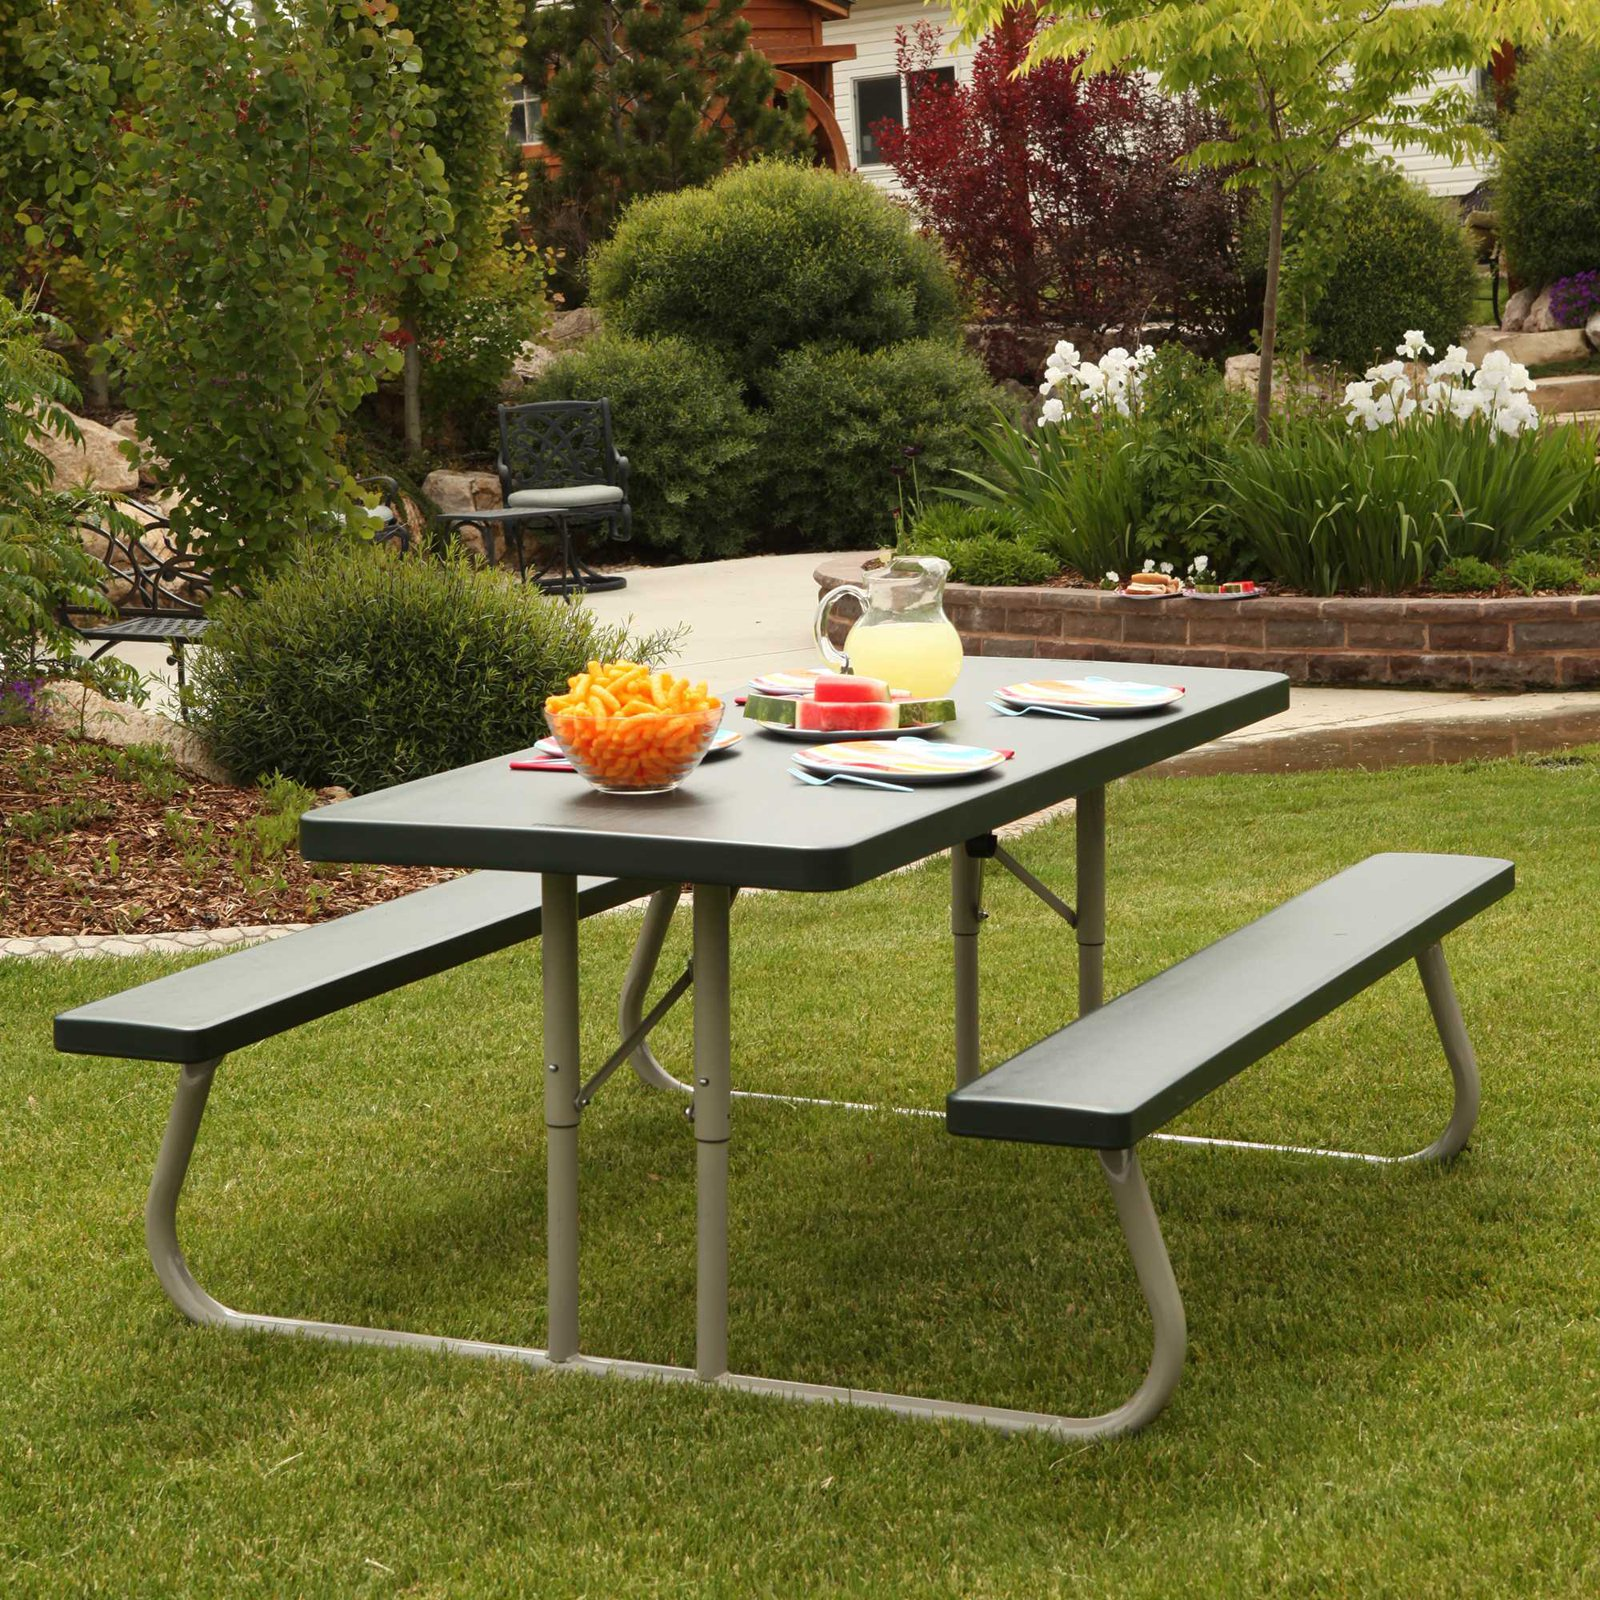 Lifetime 6' Picnic Table, Green by Lifetime Products